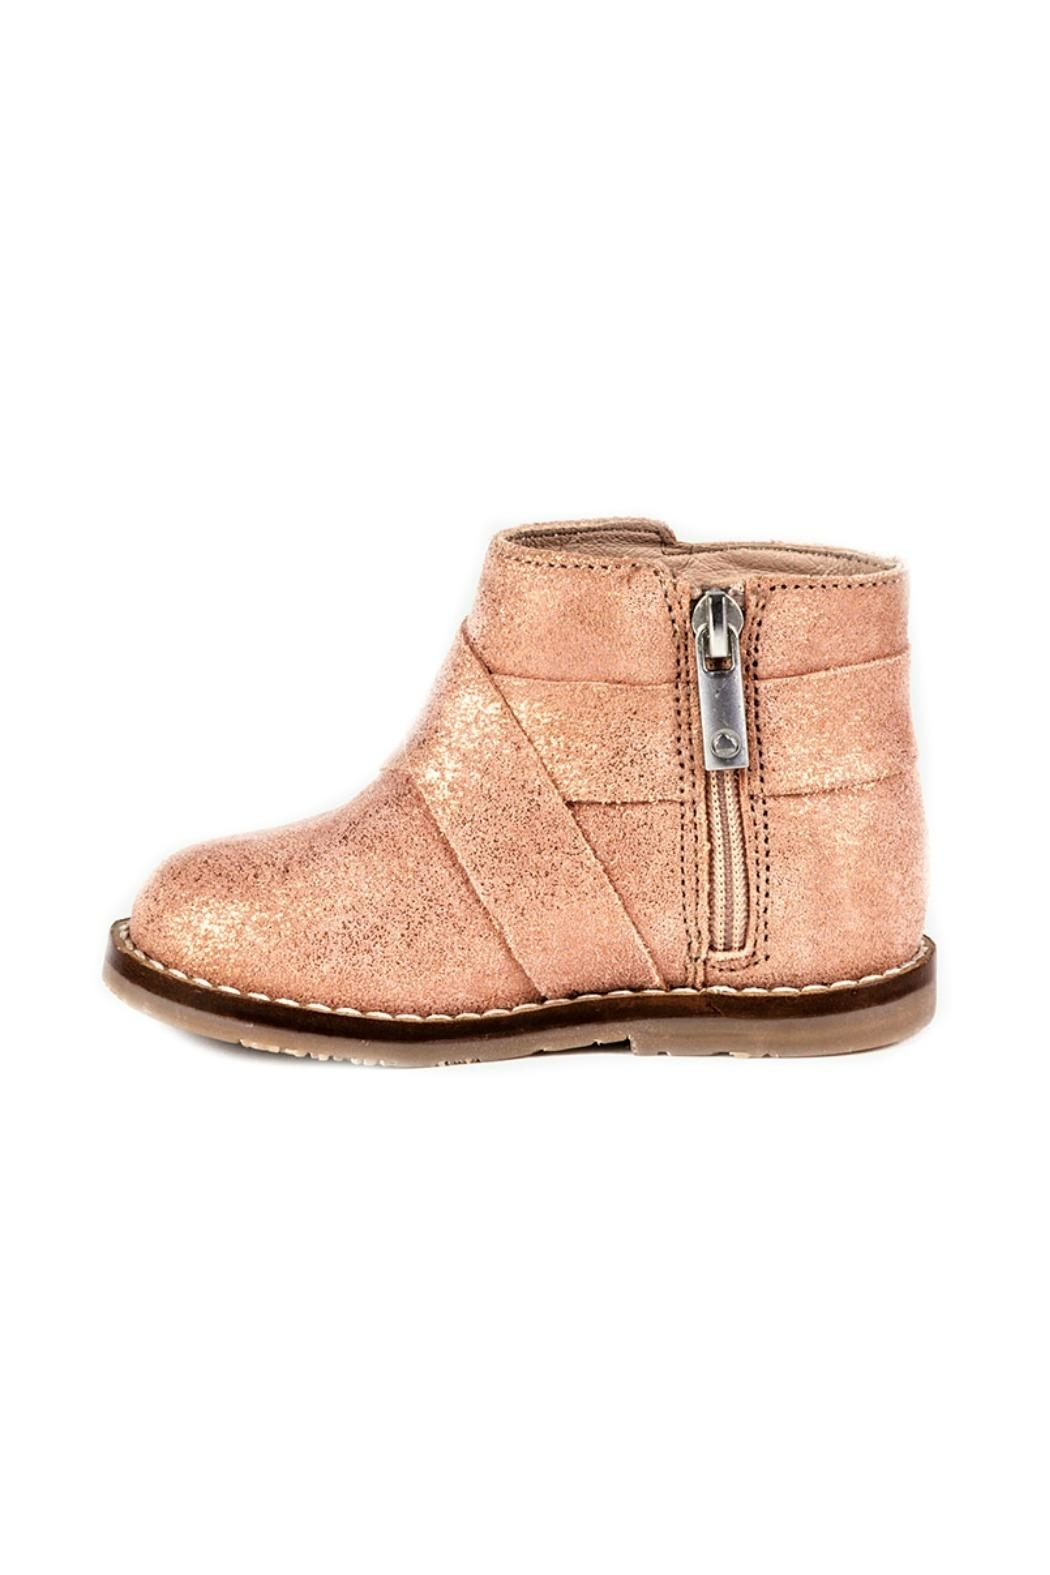 Mayoral Metallic-Pink-Girls-Leather-Ankle-Boots - Side Cropped Image